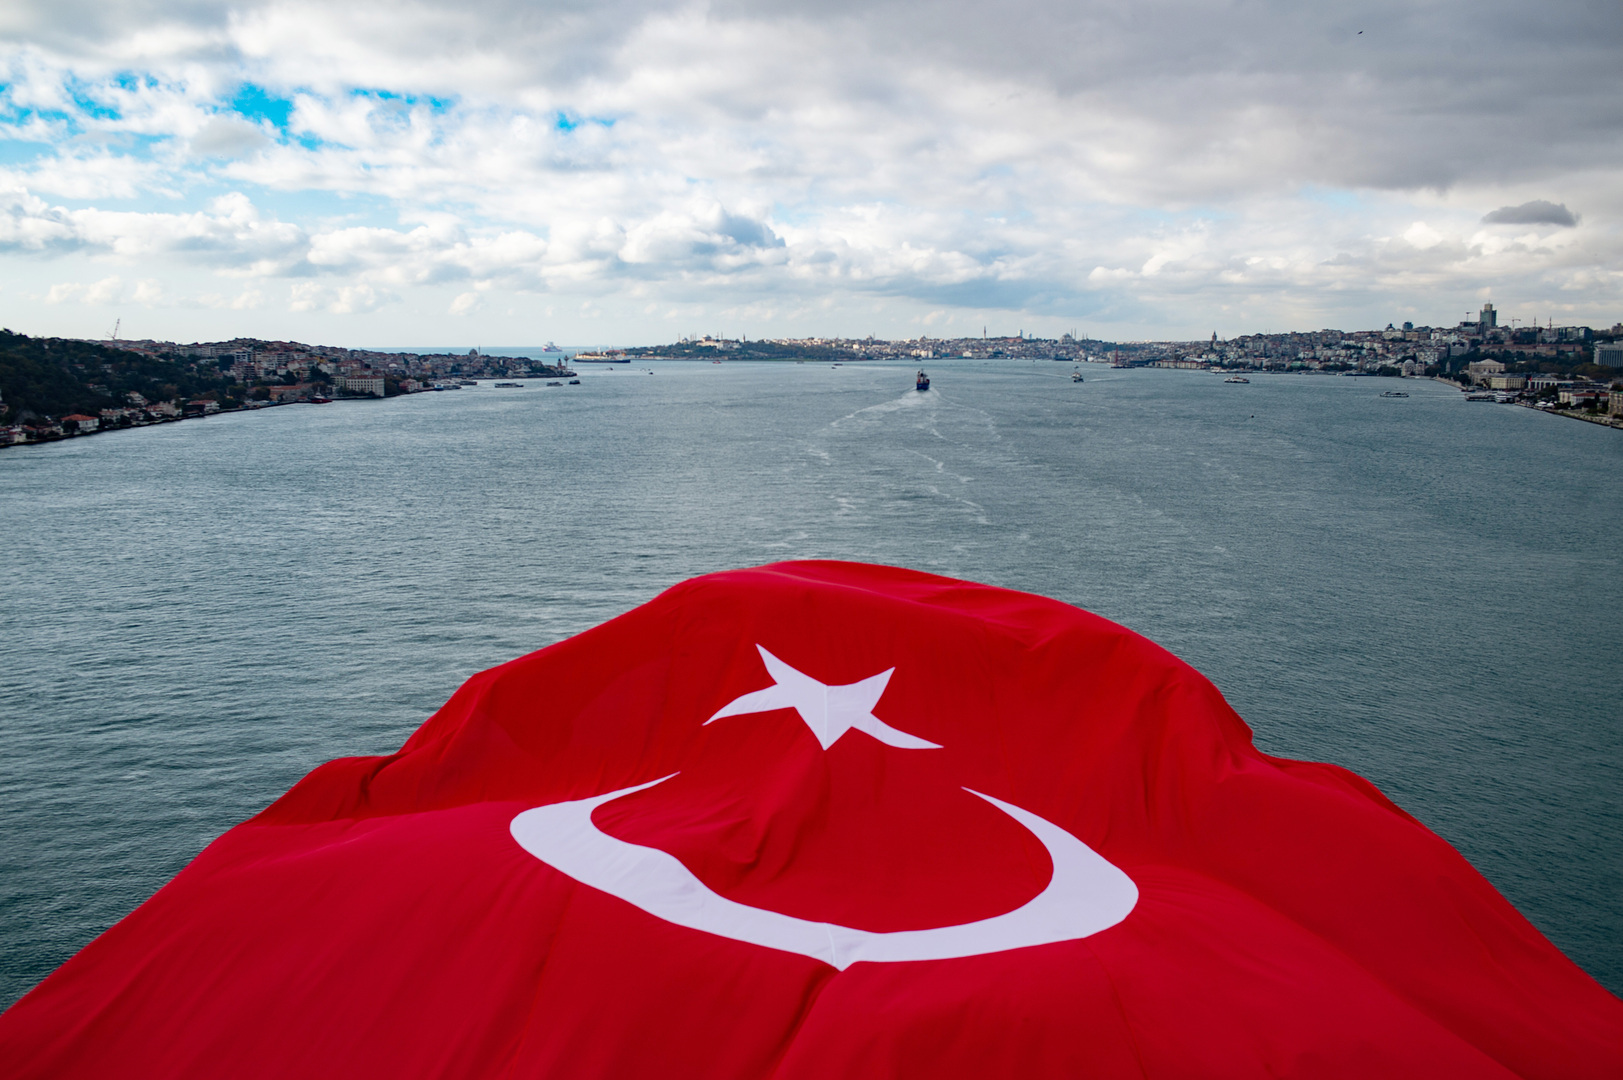 Turkey: A campaign denouncing harassment is sweeping the literary circles in the country